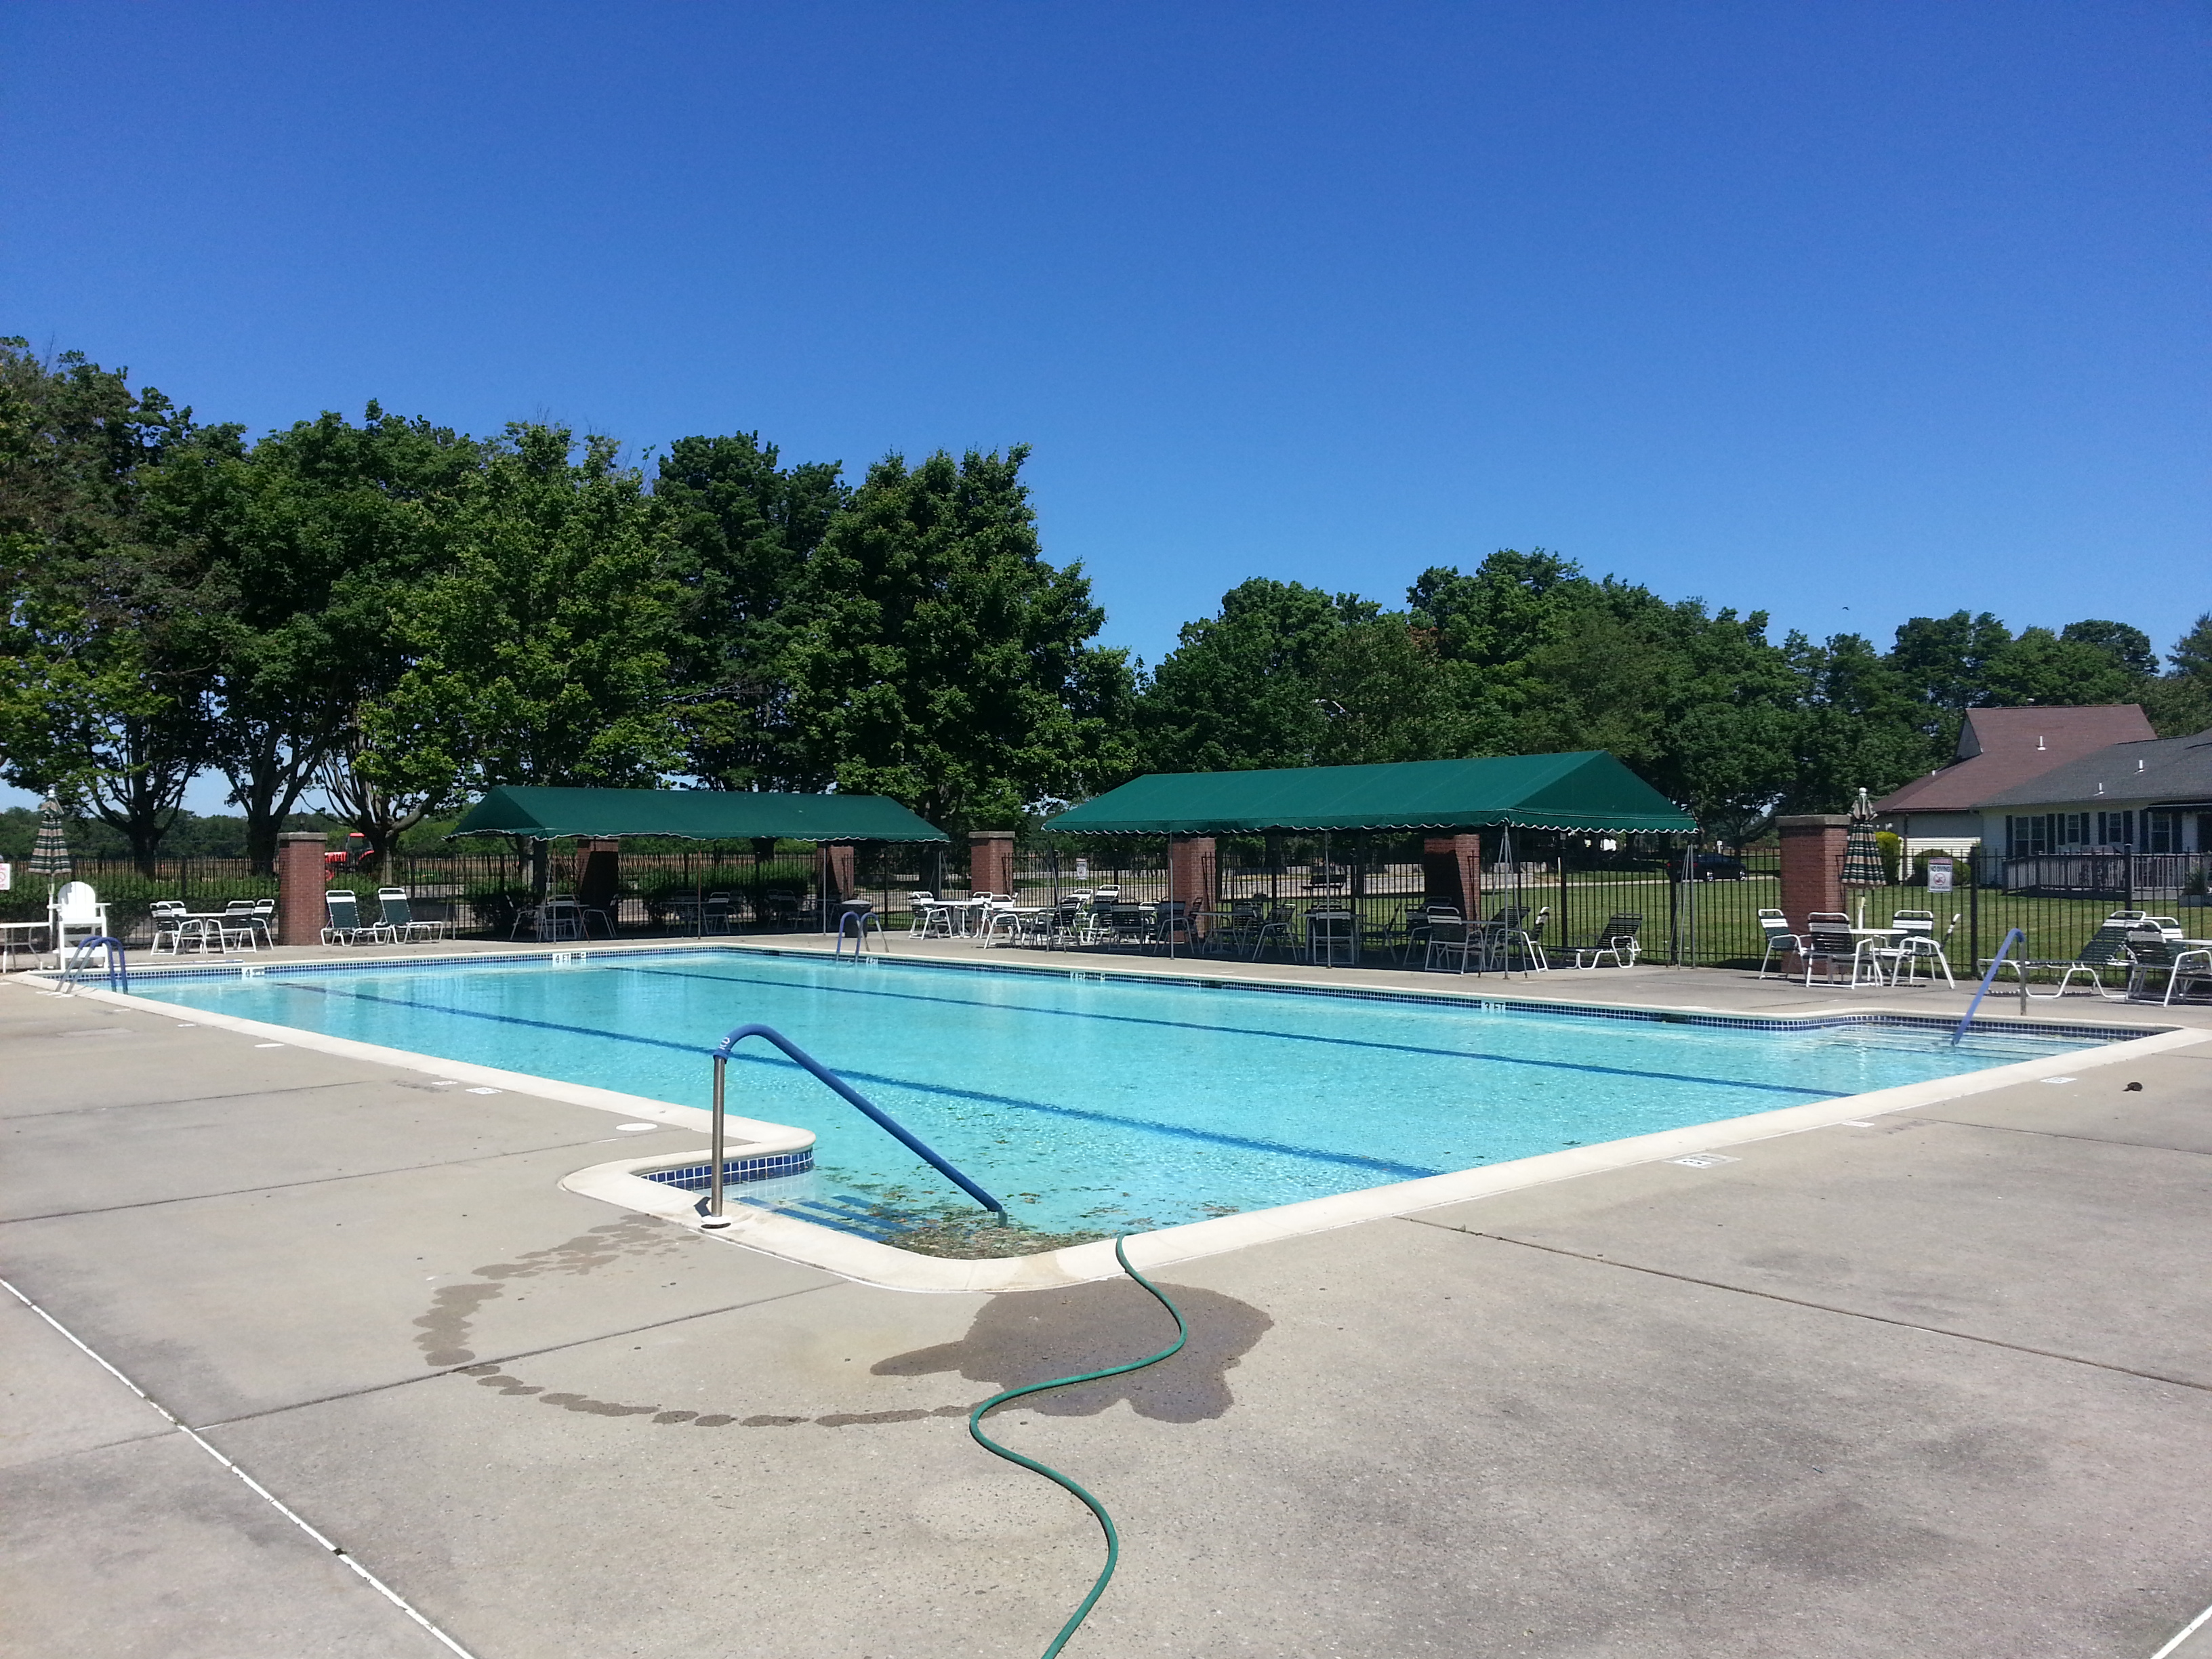 The community pool located by the recreation building is the focal point of the summer social scene.